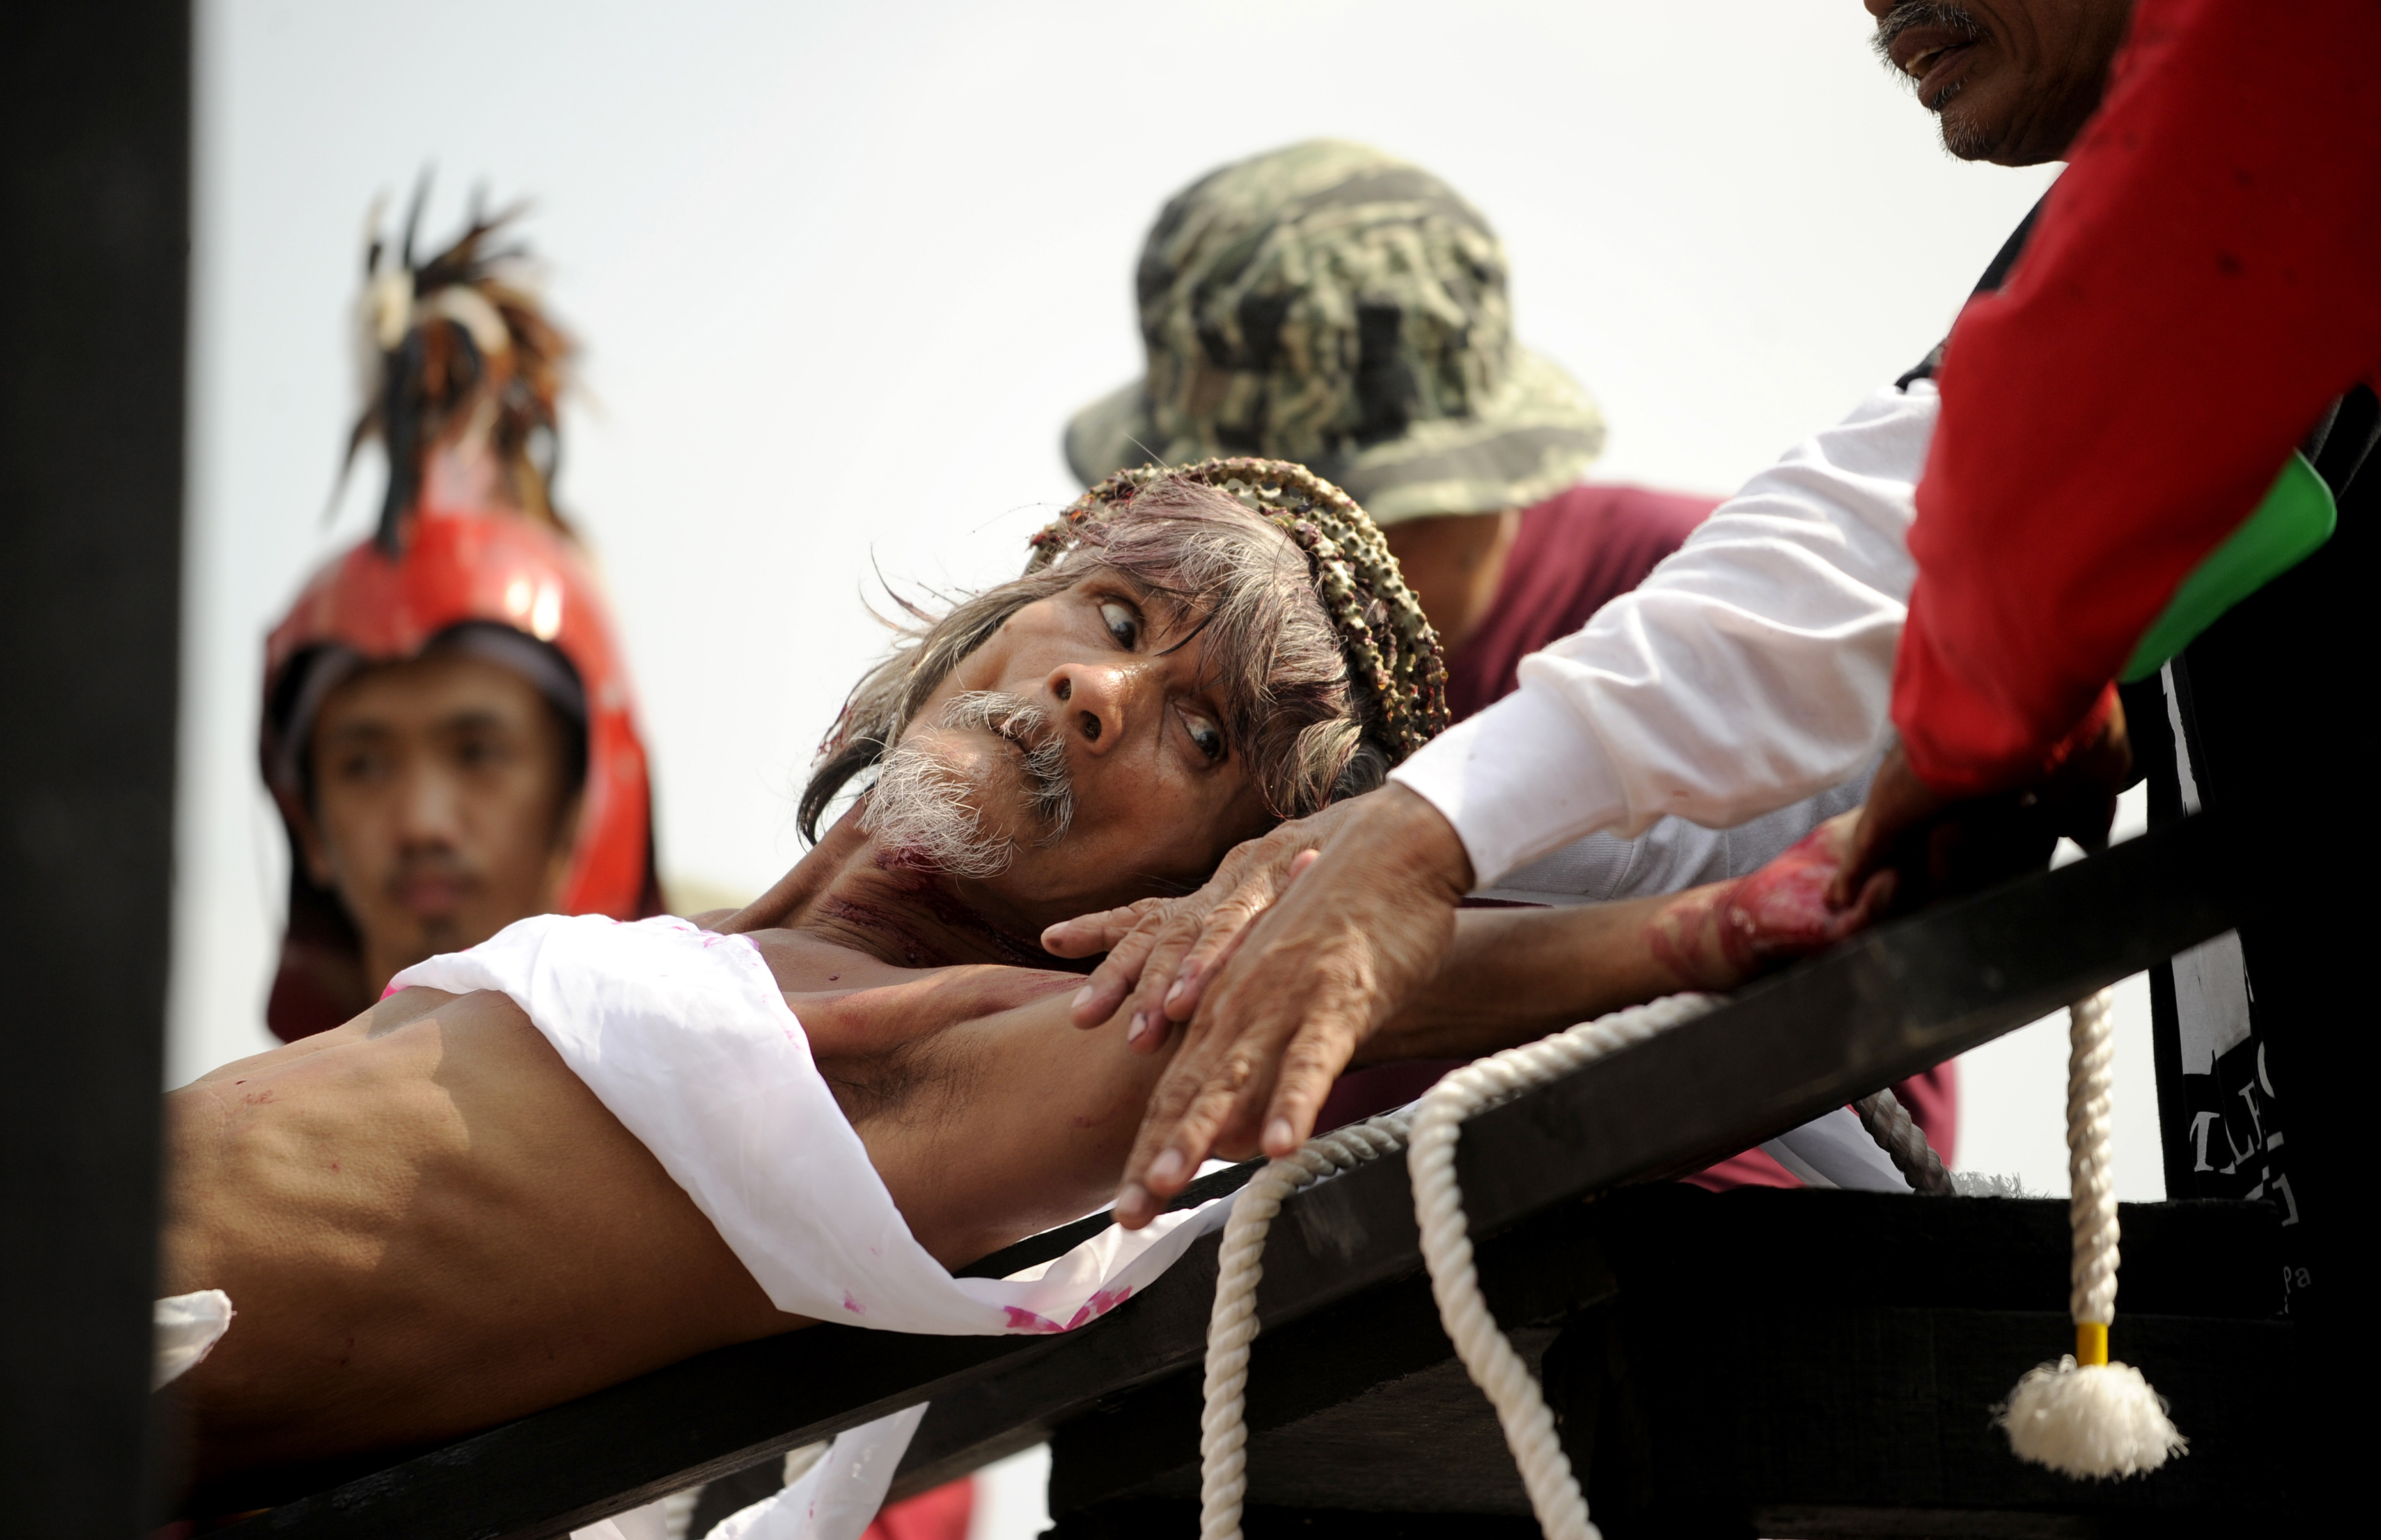 Willy Salvador, 59, is nailed to a cross as part of his penitence during a reenactment of the crucifixion of Jesus Christ for Good Friday celebrations ahead of Easter in the village of San Juan, Pampanga, north of Manila on March 25, 2016. Christian devotees were nailed to crosses in the Philippines on March 25 as Asia's Catholic heartland marked Easter with an extreme display of faith. / AFP / NOEL CELIS